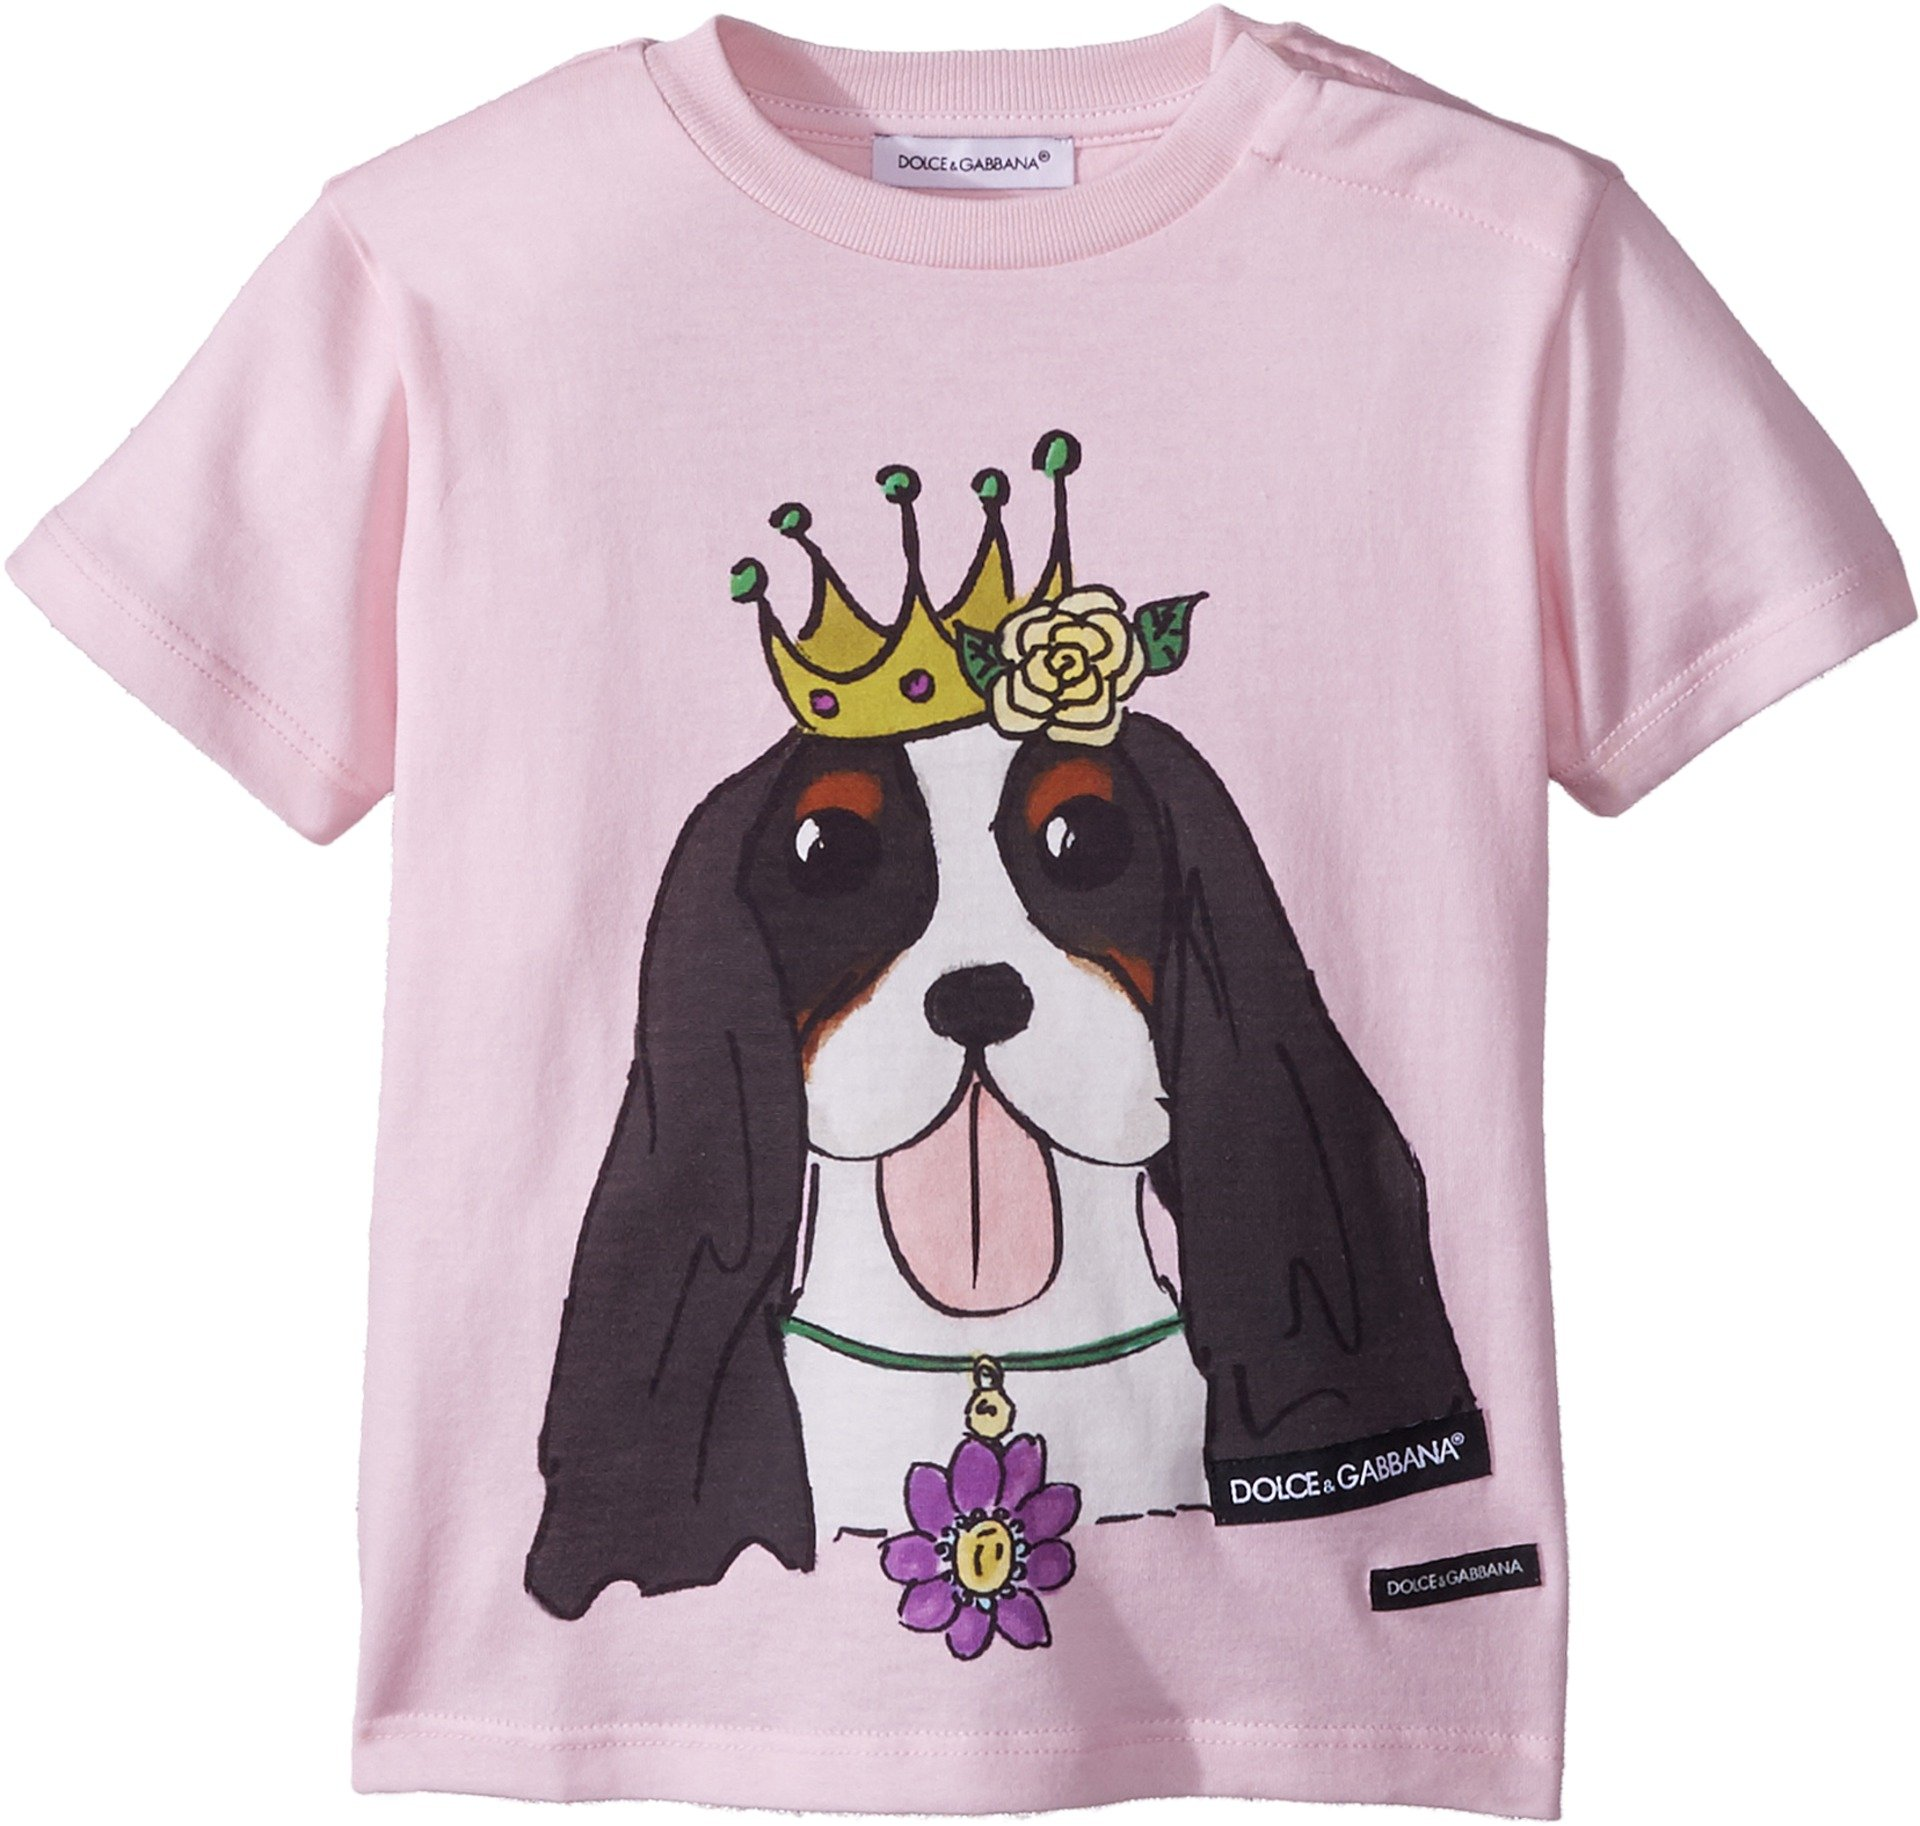 Dolce & Gabbana Kids Baby Girl's T-Shirt (Infant) Pink Print 12-18 Months by Dolce & Gabbana (Image #1)